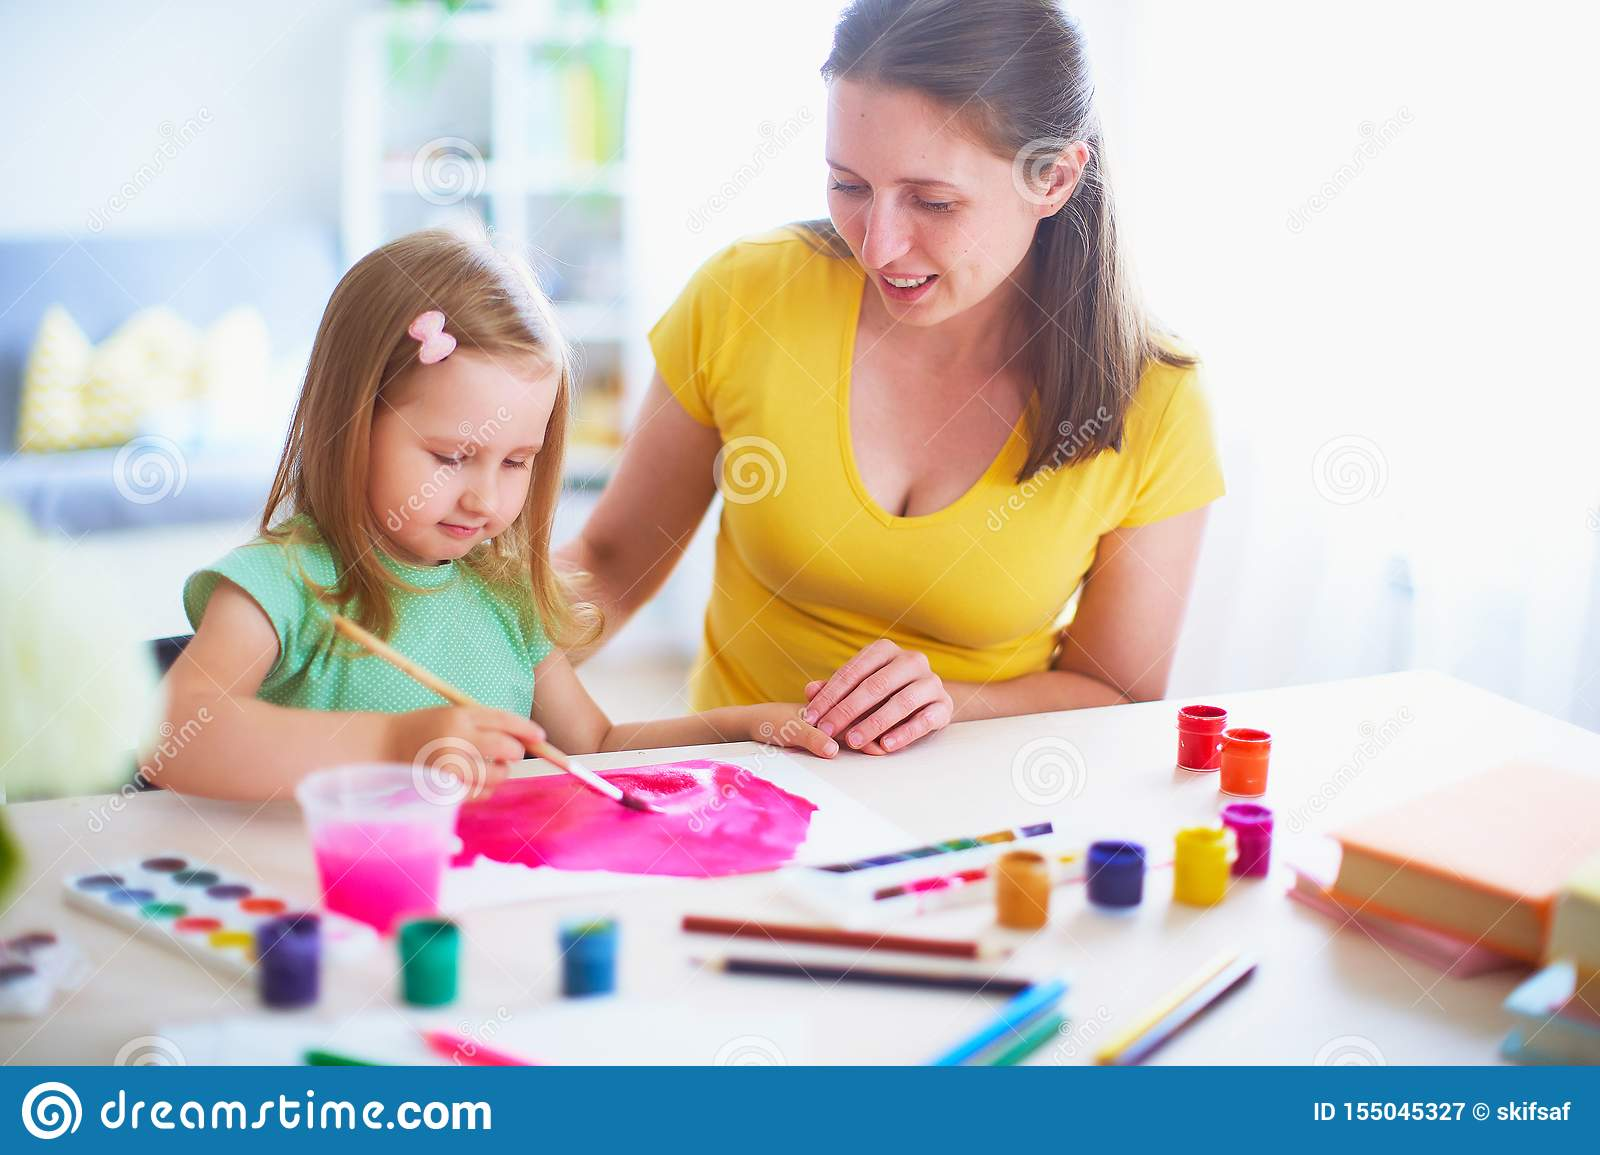 Mother daughter paints watercolor on a sheet of paper sitting at home at the table in a bright room